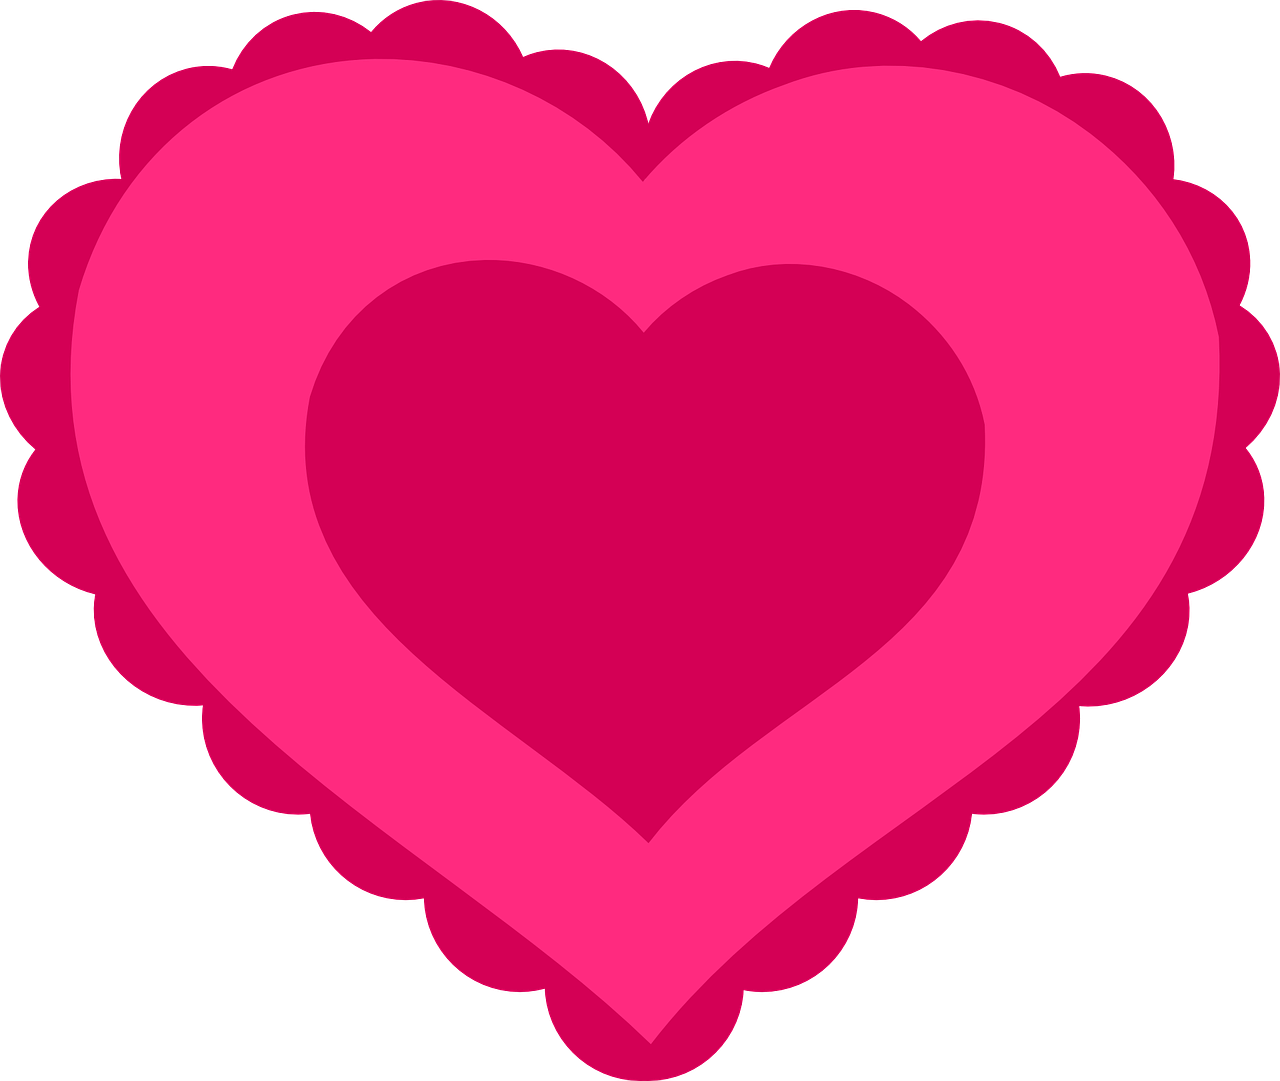 heart,love,pink,valentine,lace,romance,symbol,romantic,free vector graphics,free pictures, free photos, free images, royalty free, free illustrations, public domain